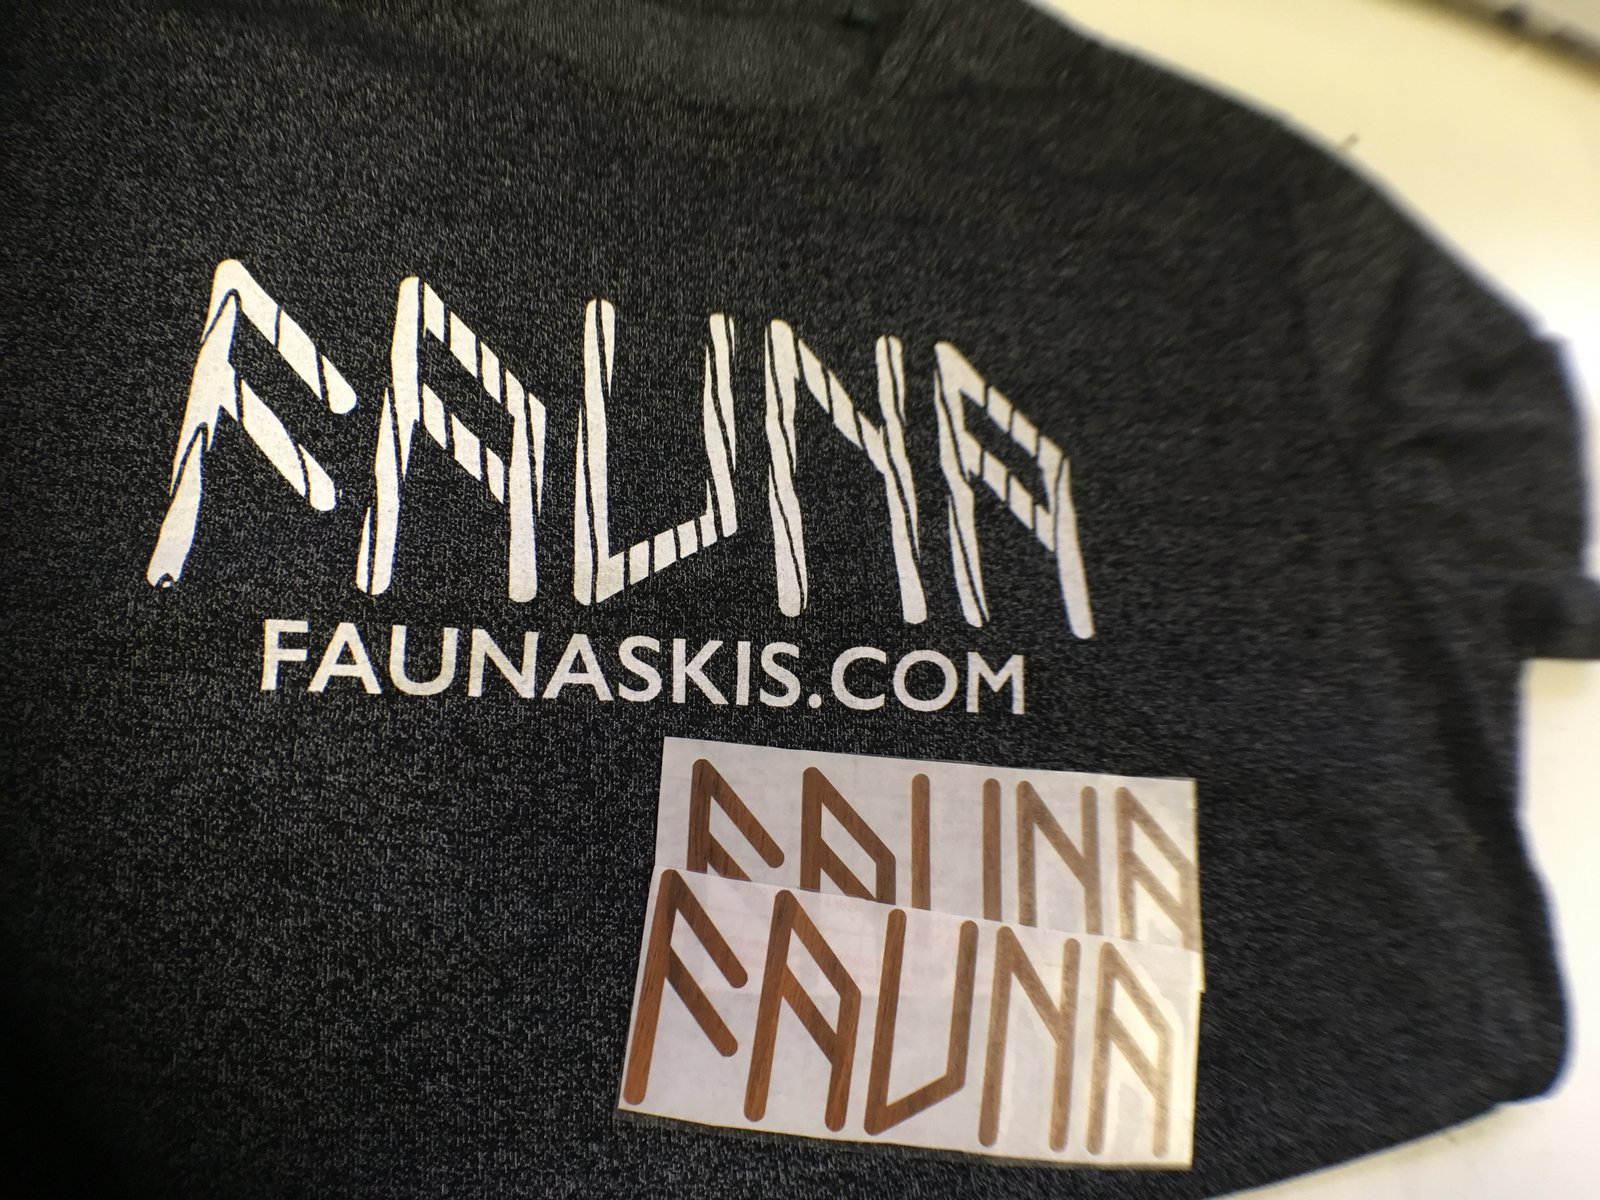 Fauna Skis Tee & Stickers